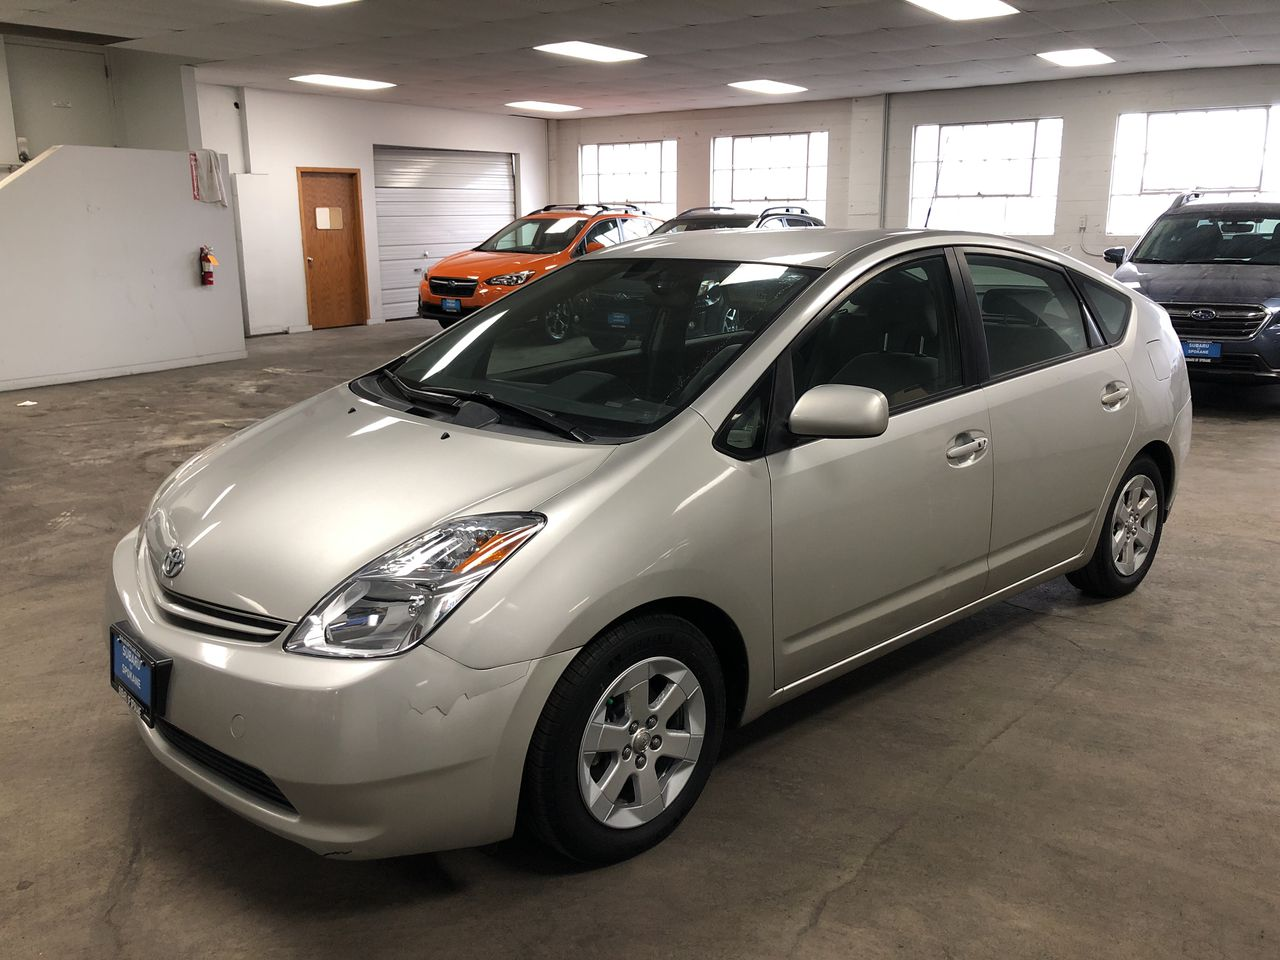 Best Toyota Prius For Sale Savings From - 2004 prius